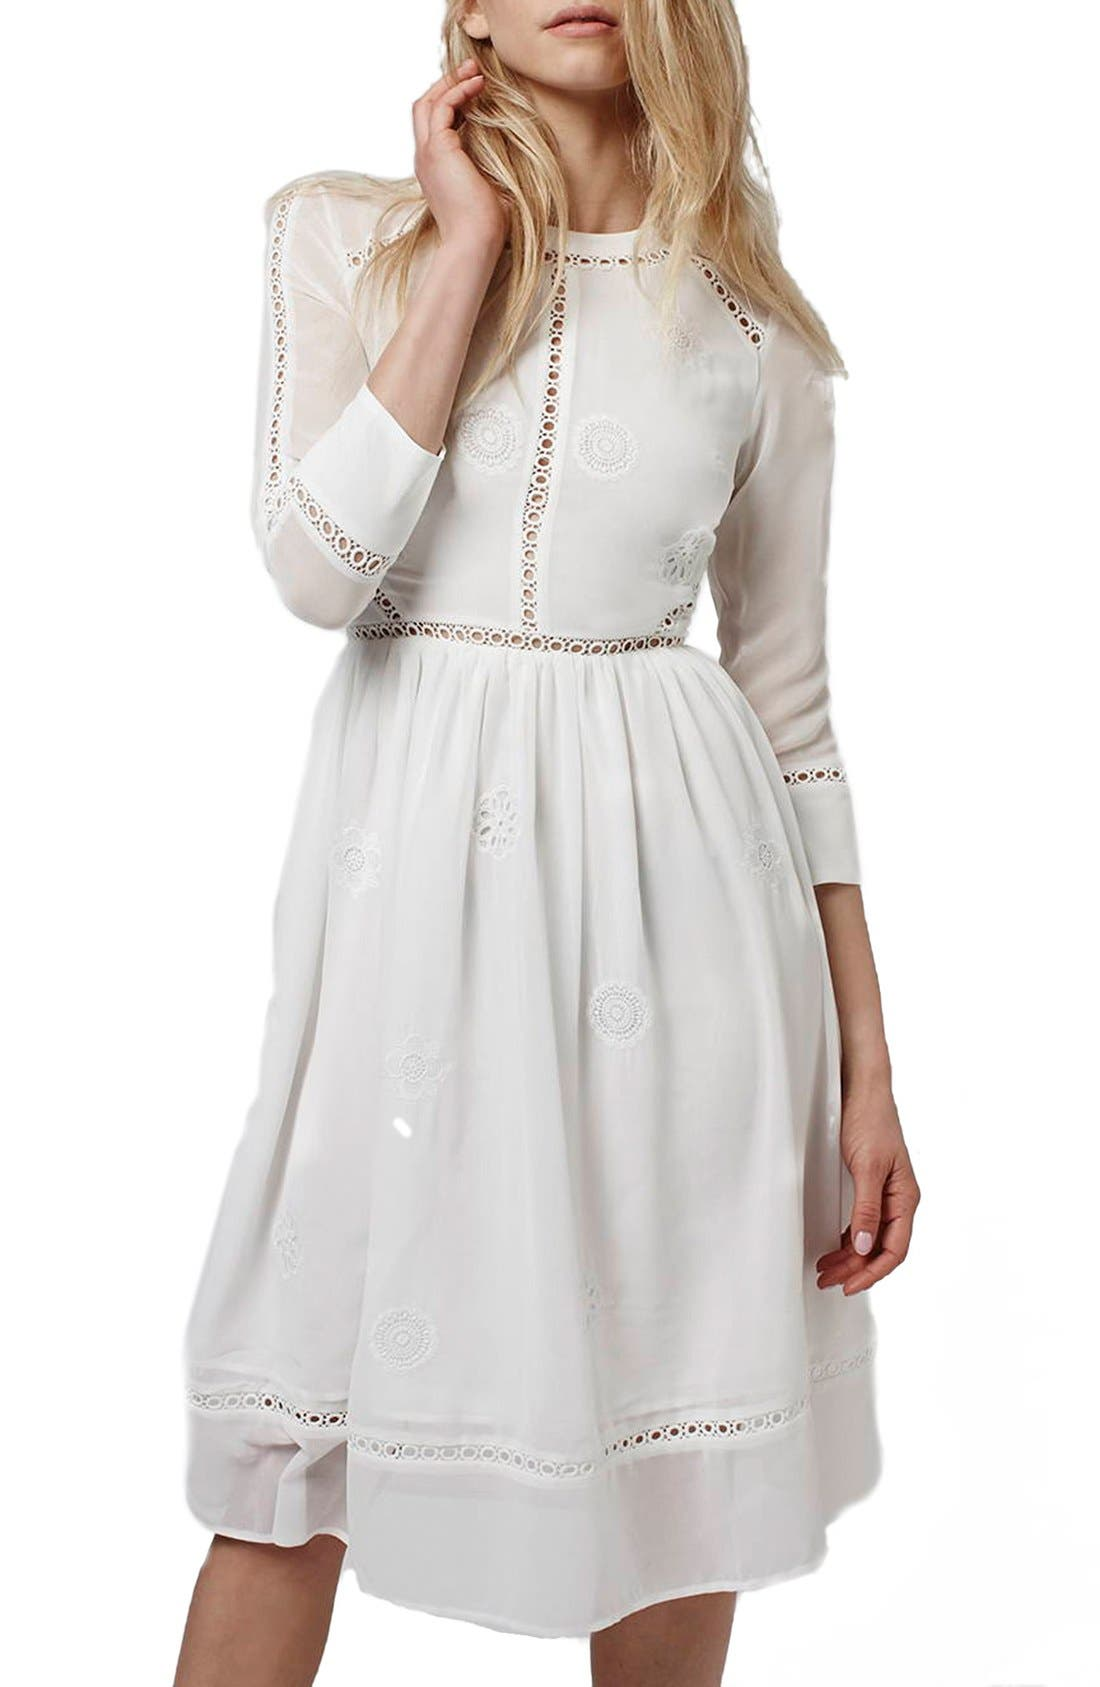 Alternate Image 1 Selected - Topshop 'Puritan' Cutwork Midi Dress